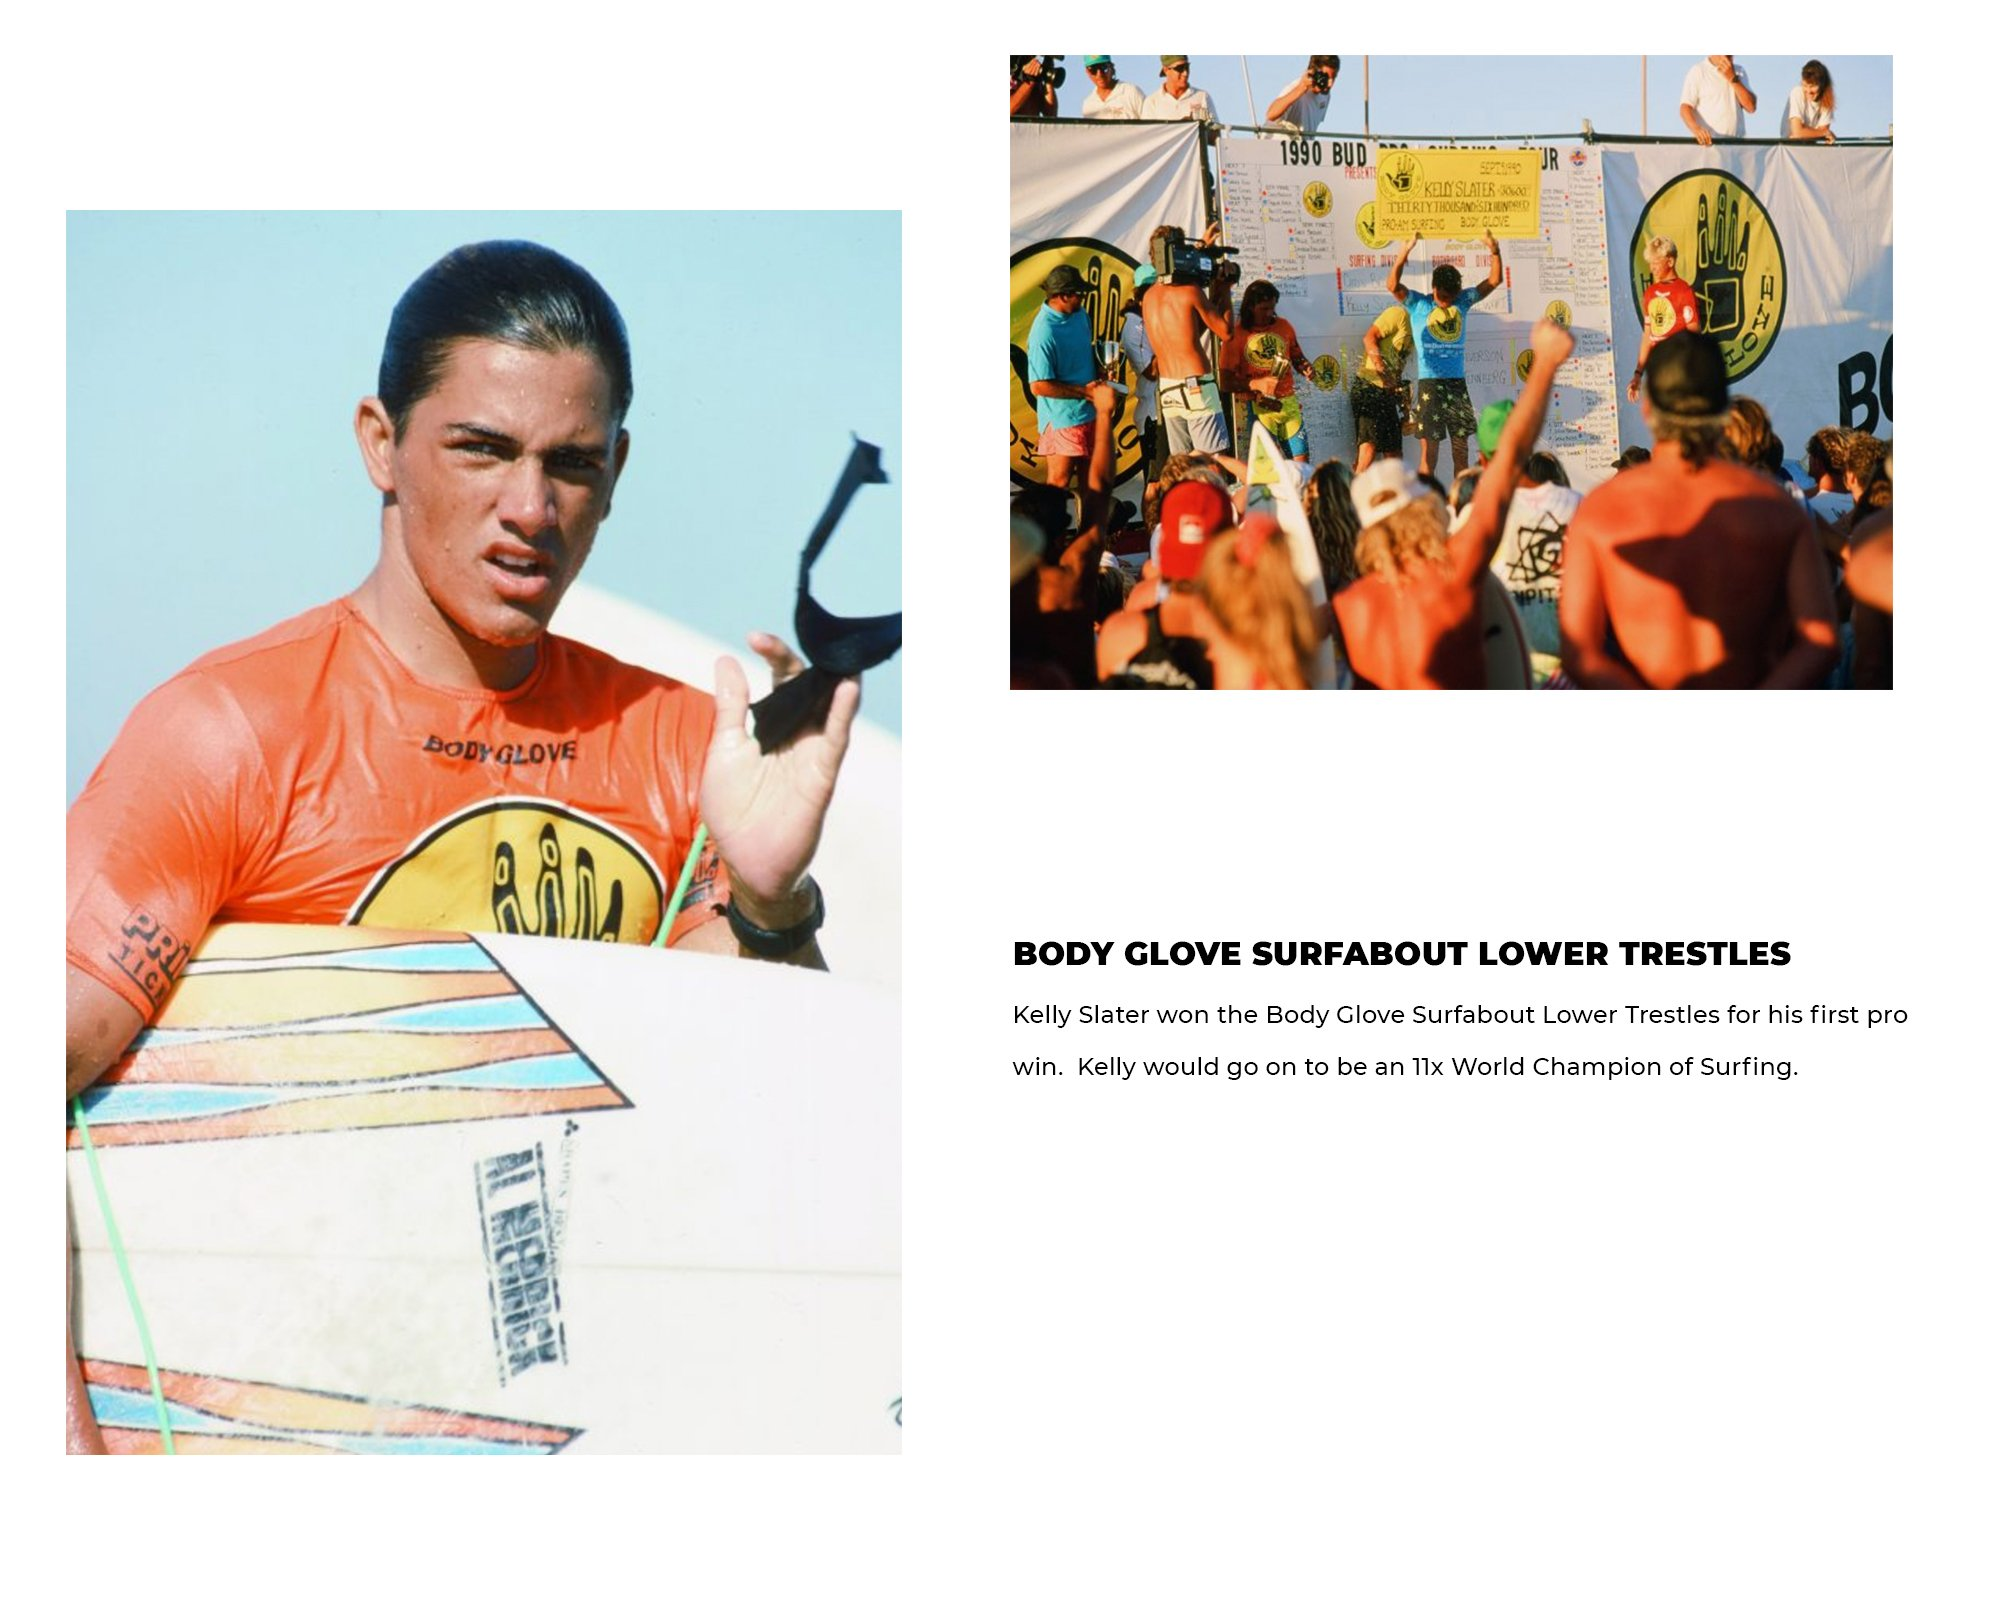 Body Glove Surfabout Lower Trestles | Kelly Slater won the Body Glove Surfabout Lower Trestles for his first pro win.  Kelly would go on to be an 11x World Champion of Surfing.